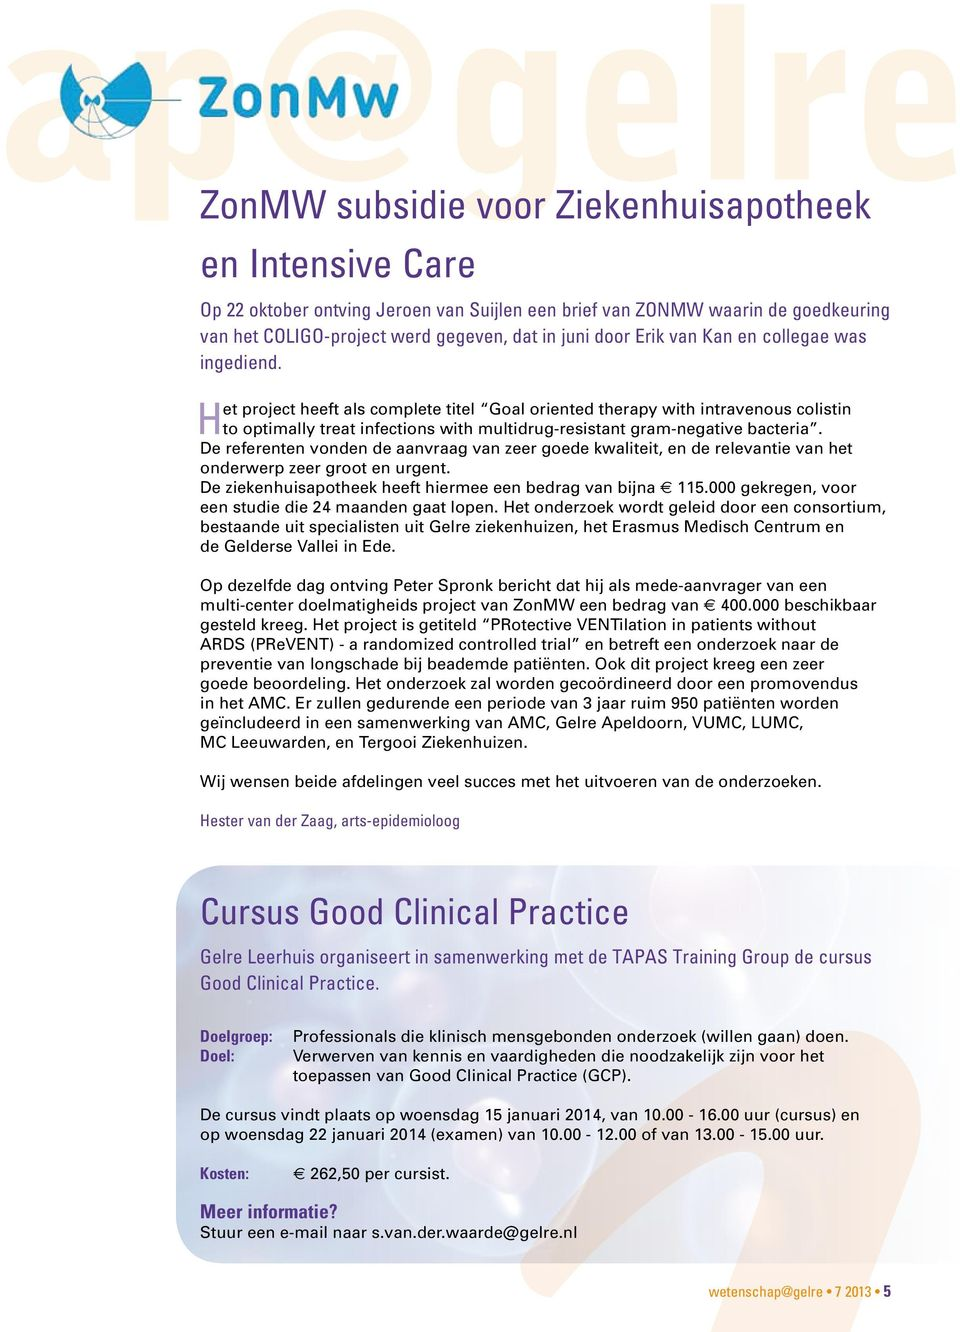 Het project heeft als complete titel Goal oriented therapy with intravenous colistin to optimally treat infections with multidrug-resistant gram-negative bacteria.